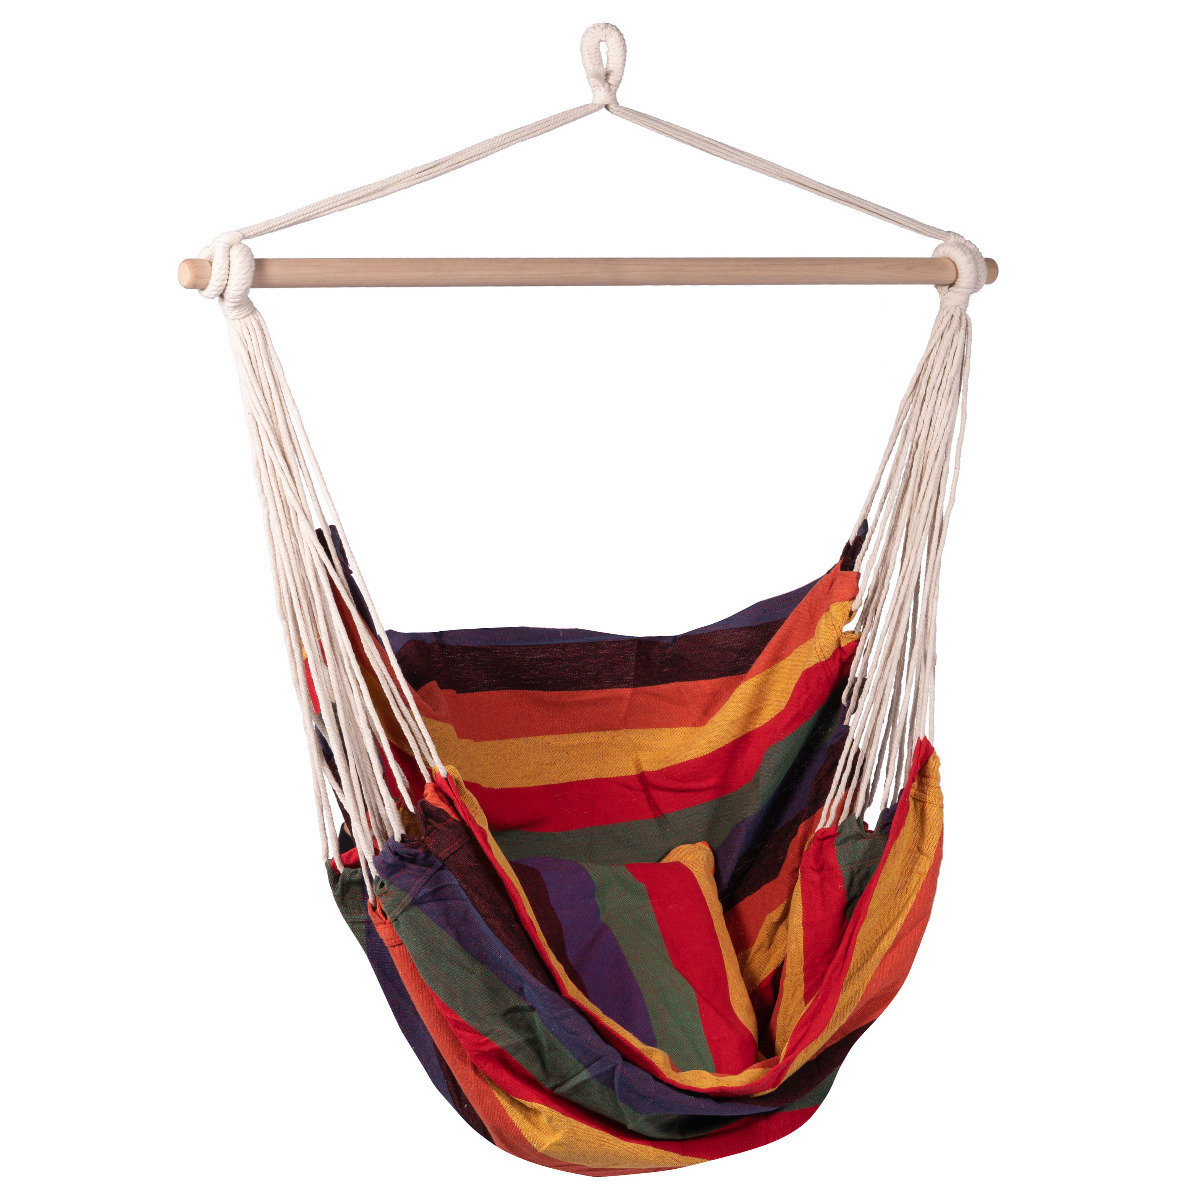 Hangstoel E�npersoons 'Multi' Single - Veelkleurig - 123 Hammock